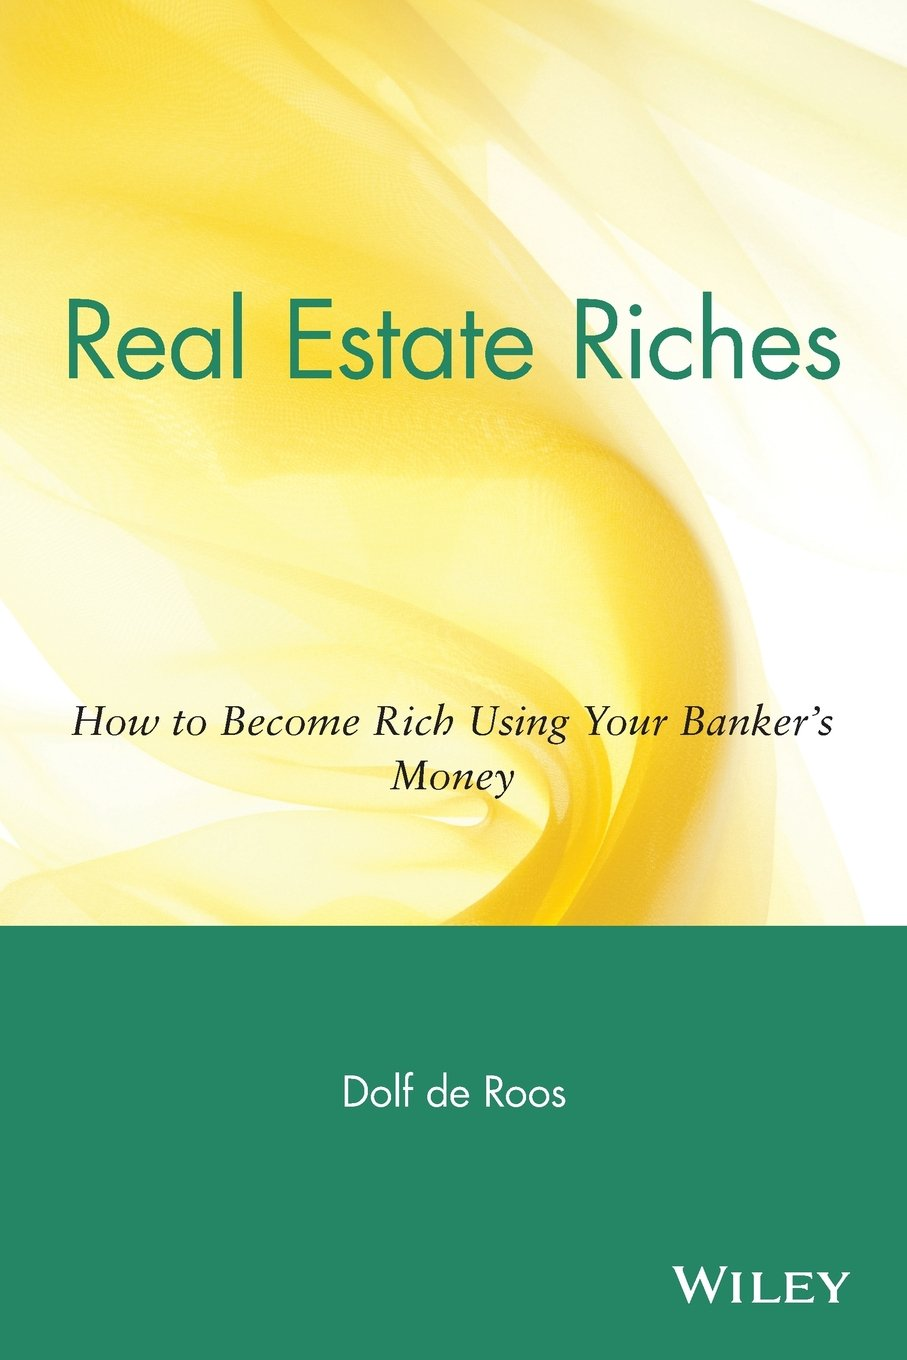 Real estate riches how to become rich using your bankers money real estate riches how to become rich using your bankers money dolf de roos 9780471711803 books amazon fandeluxe Choice Image